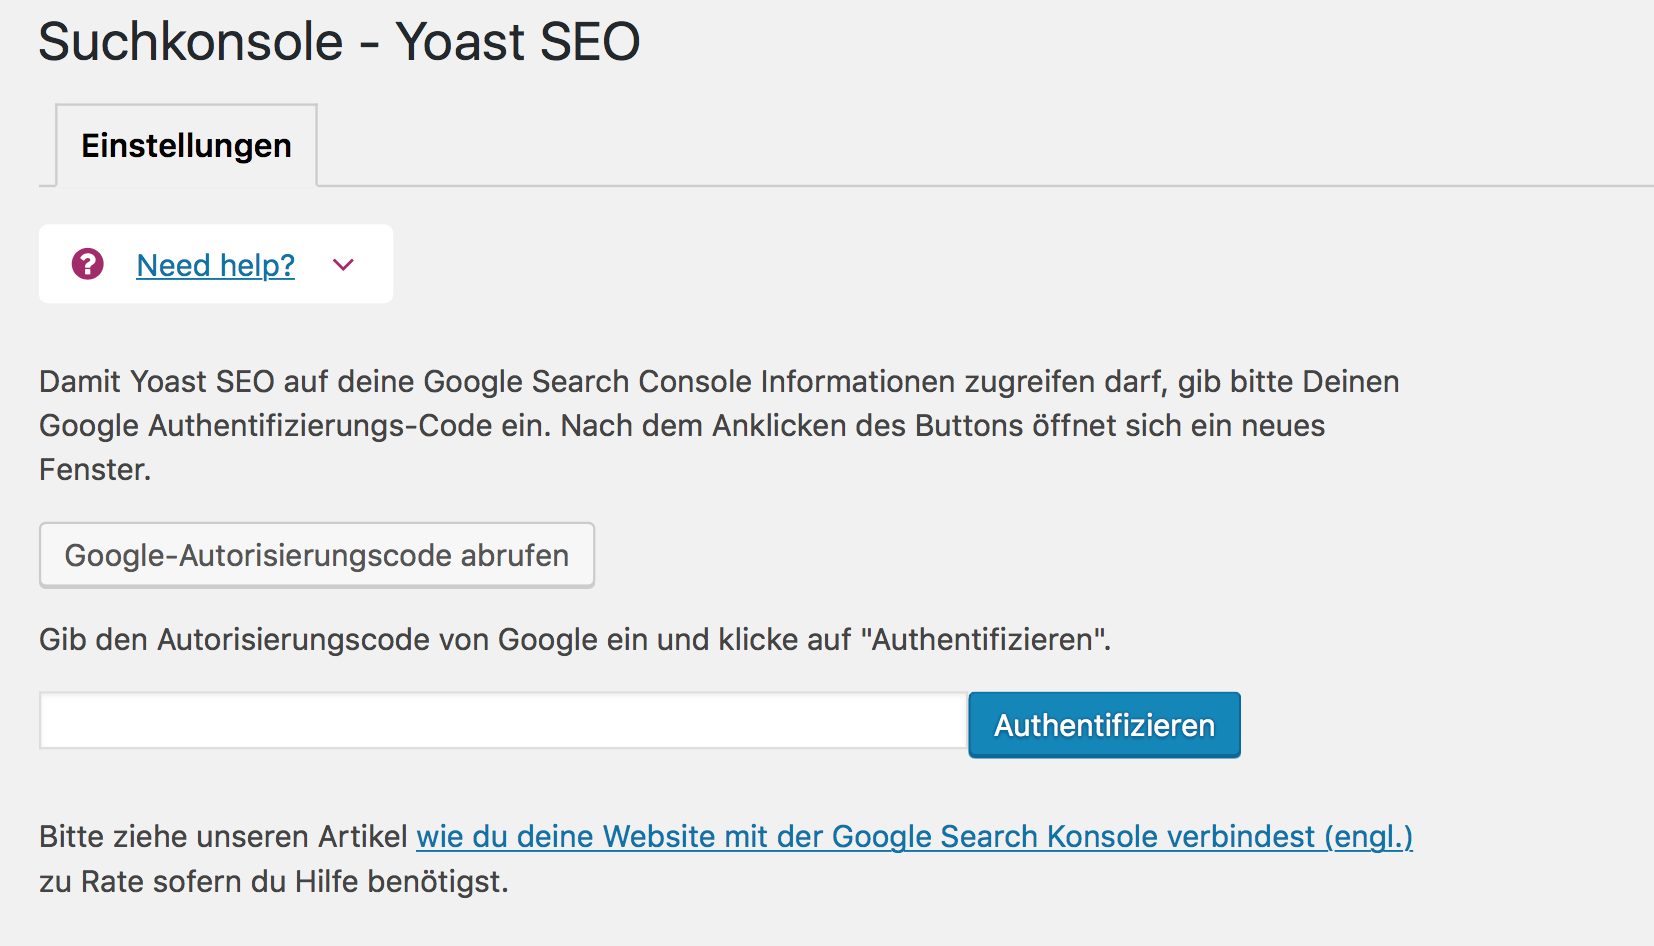 Yoast SEO Search Console